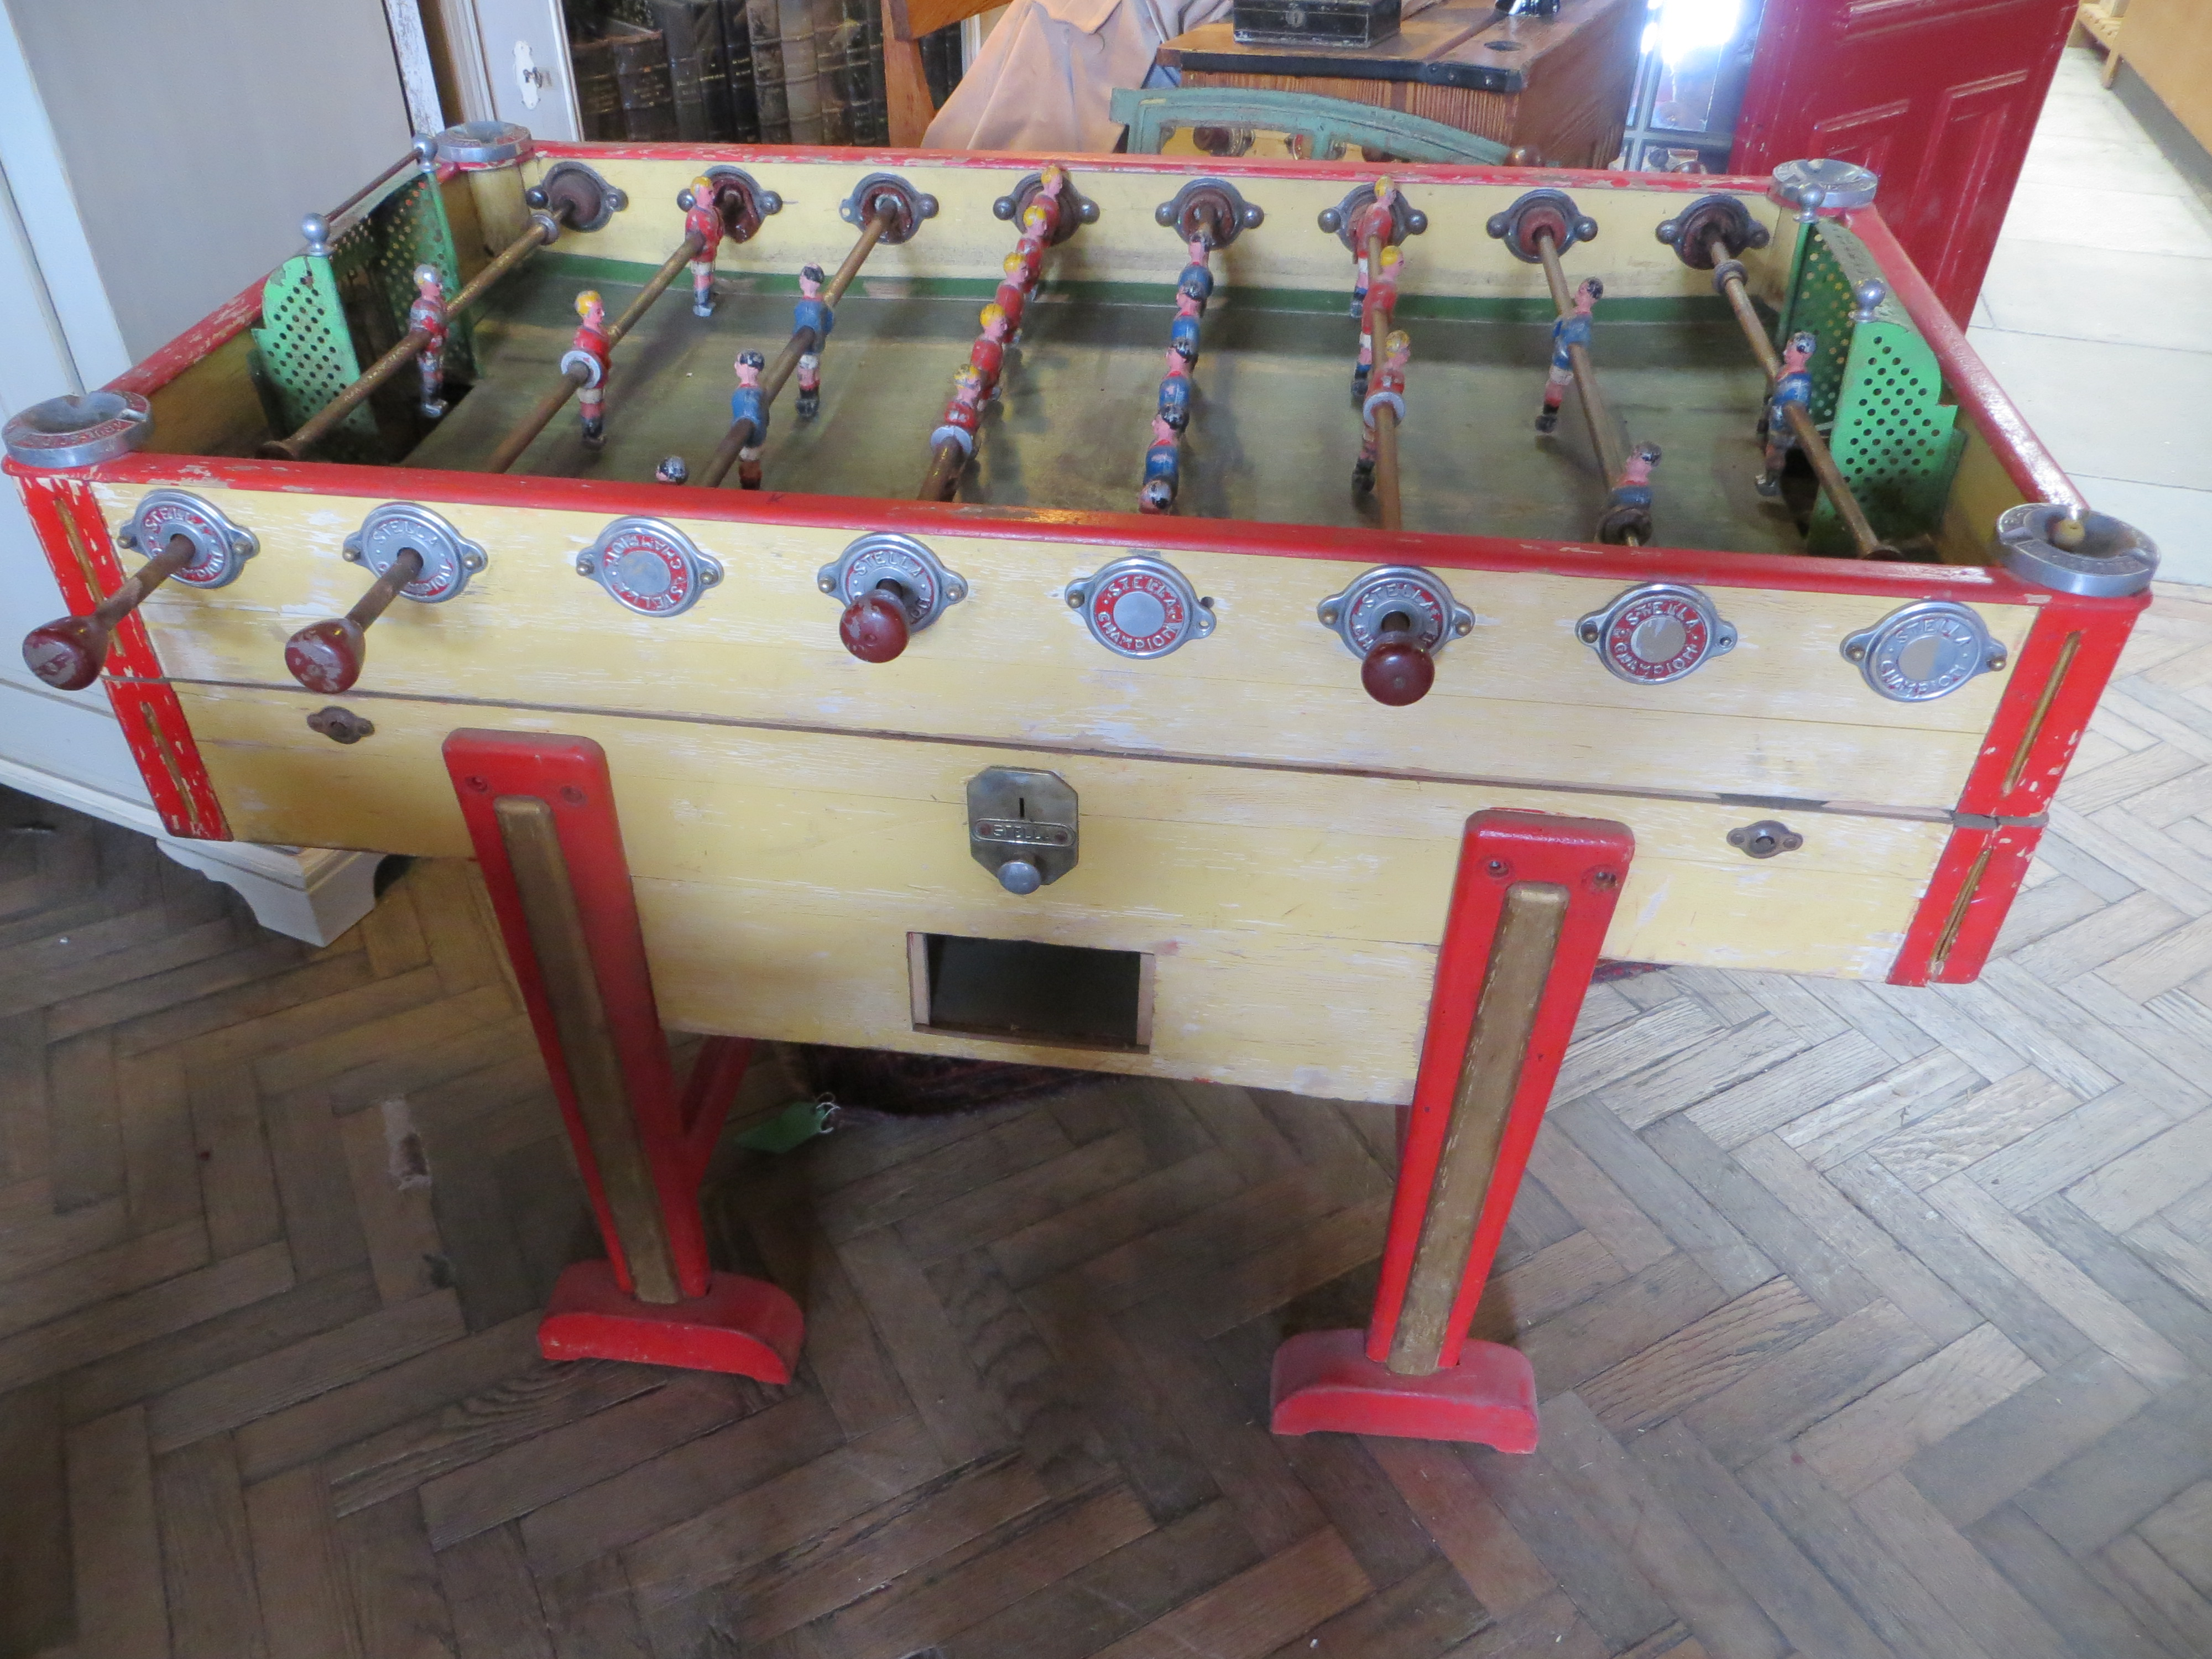 RARE MODEL ANTIQUE 1930S FRENCH STELLA ARTOIS CHAMPIONSHIP TABLE FOOTBALL BABY FOOT Eras Of